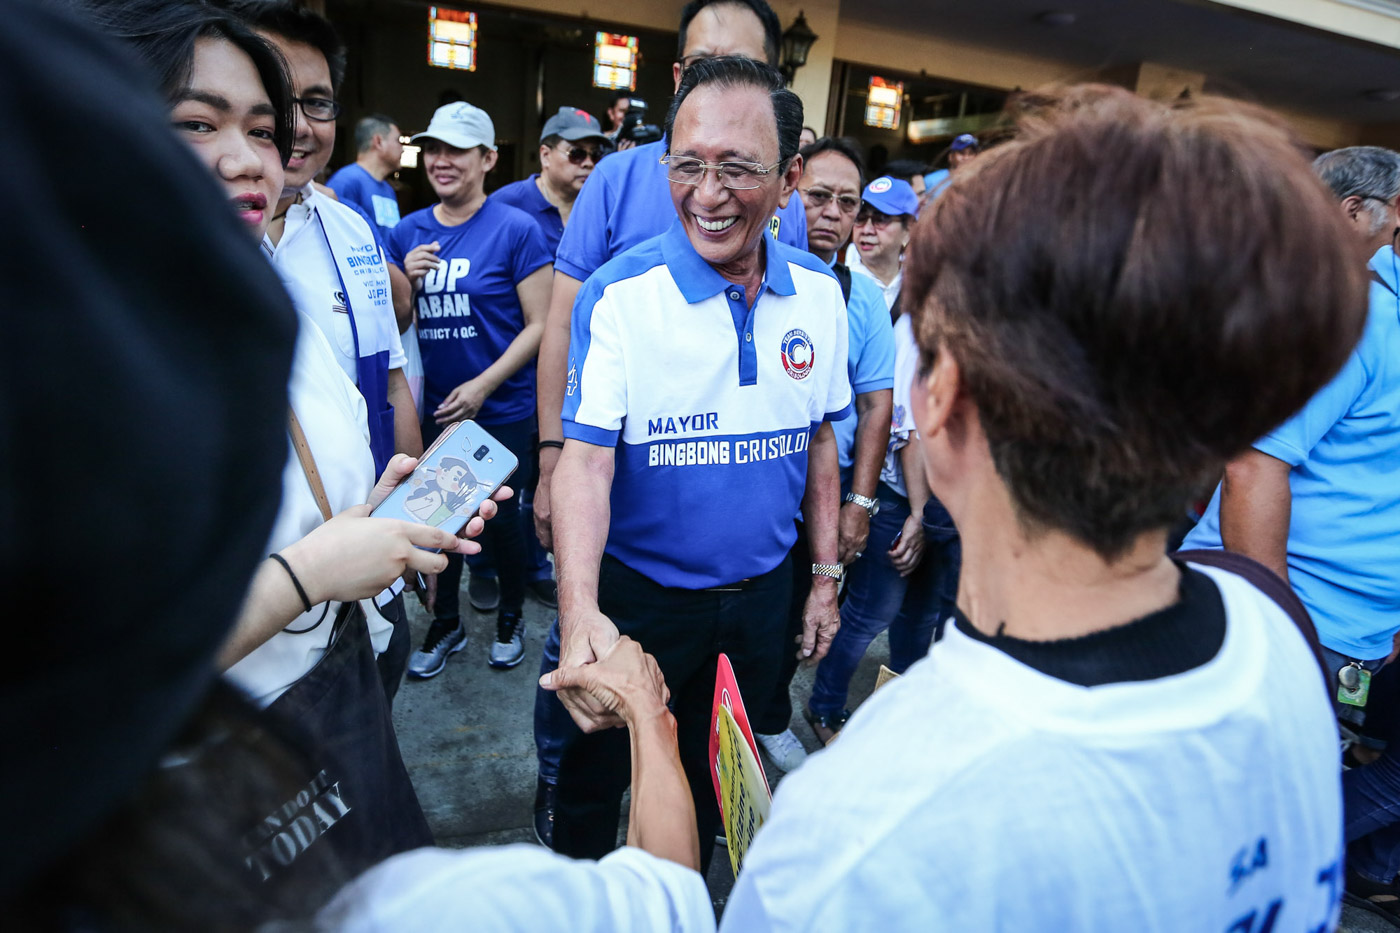 Quezon City mayoralty candidate Bingbong Crisologo lead a Unity Walk cum proclamation rally at the San Pedro Bautista Church on March 29, 2019. Photo by Jire Carreon/Rappler